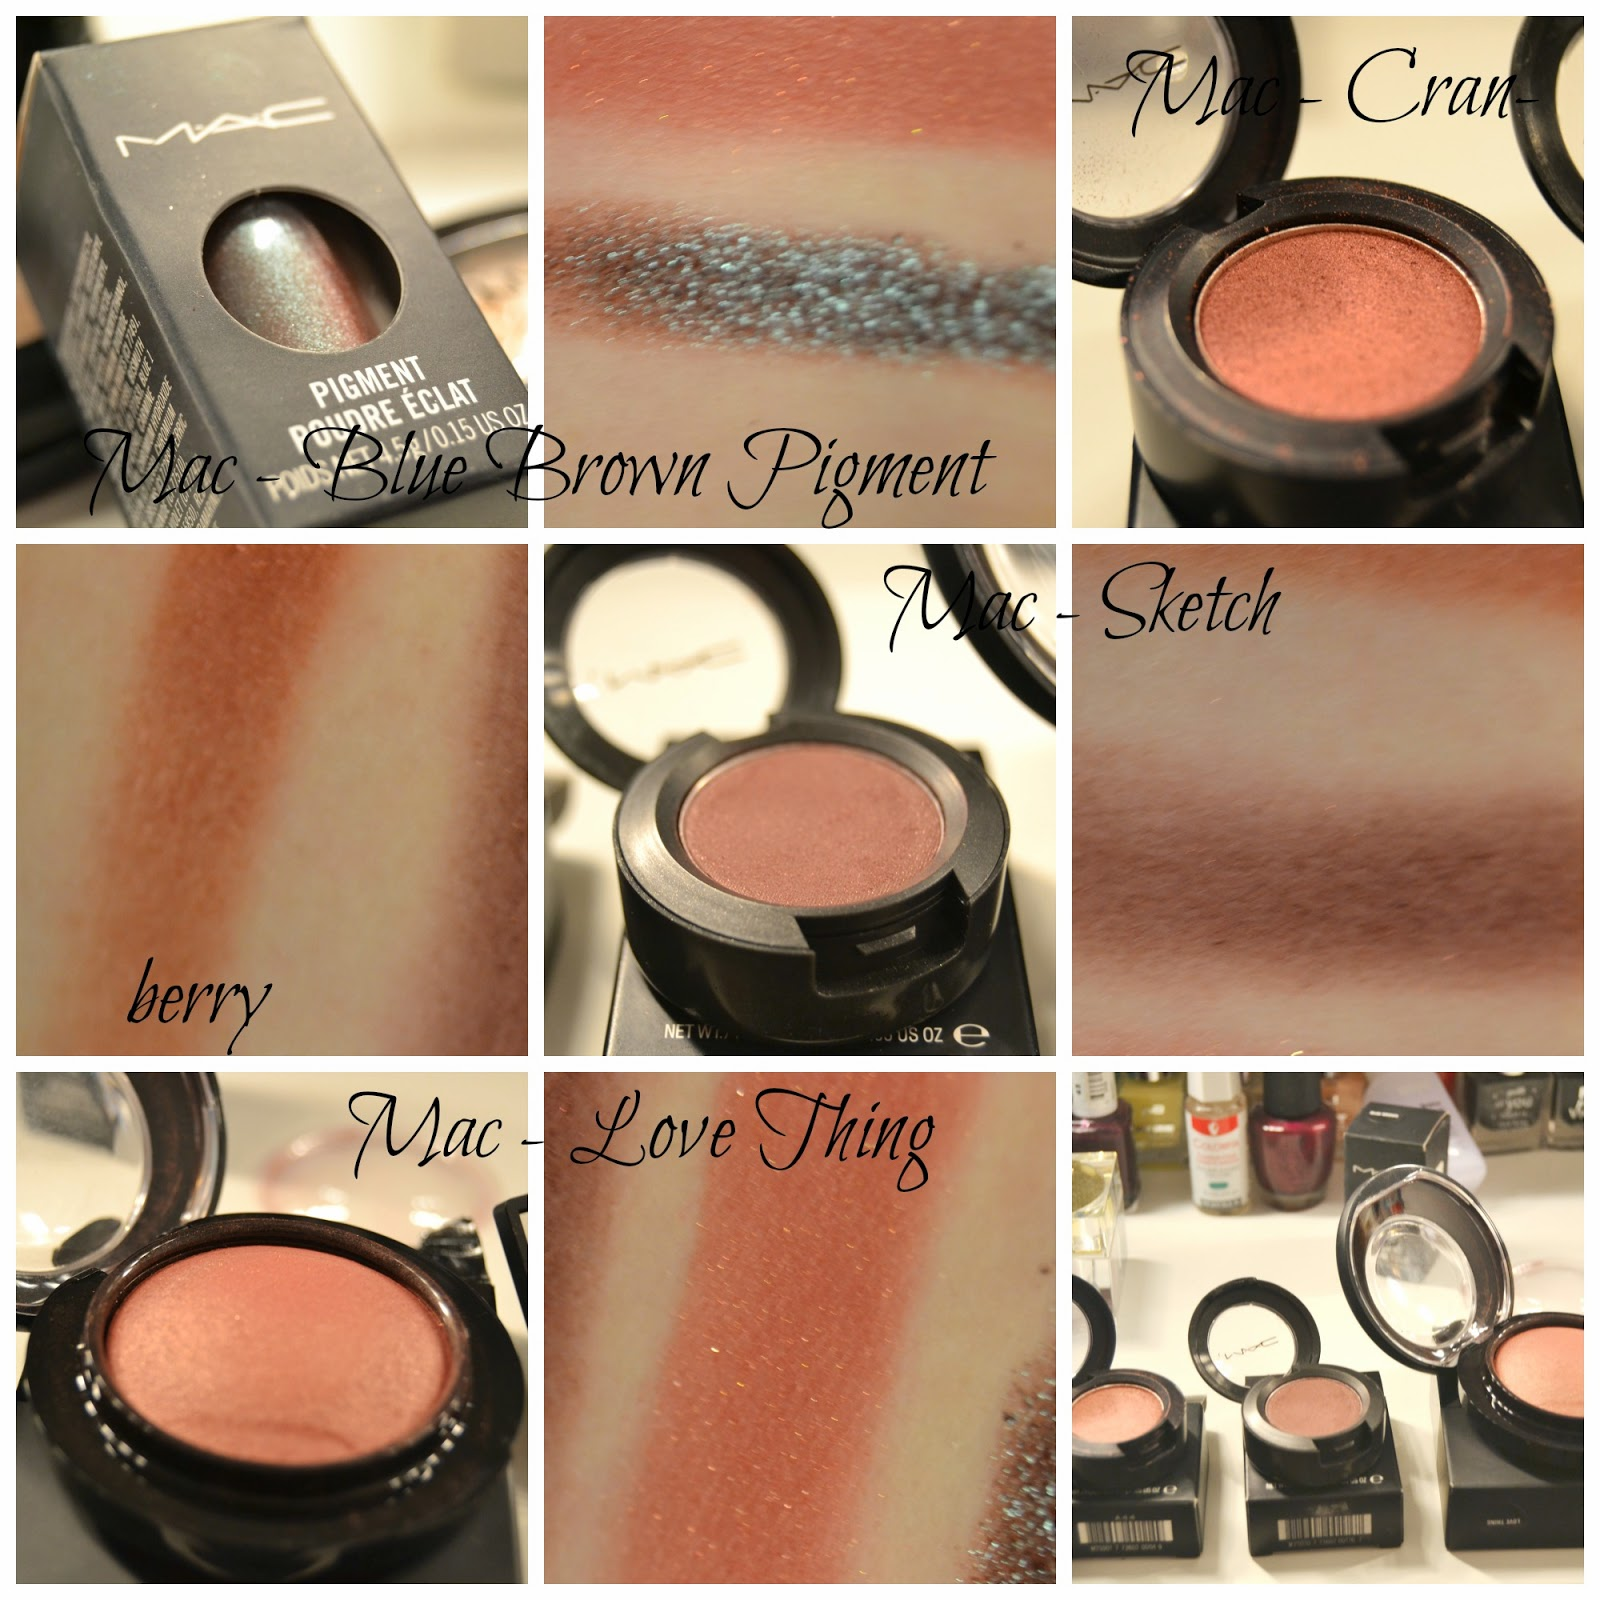 Mac Blue Brown Pigment Mac Cranberry Sketch Love Thing Mineralize Blush Eyeshadow Swatch Dupe